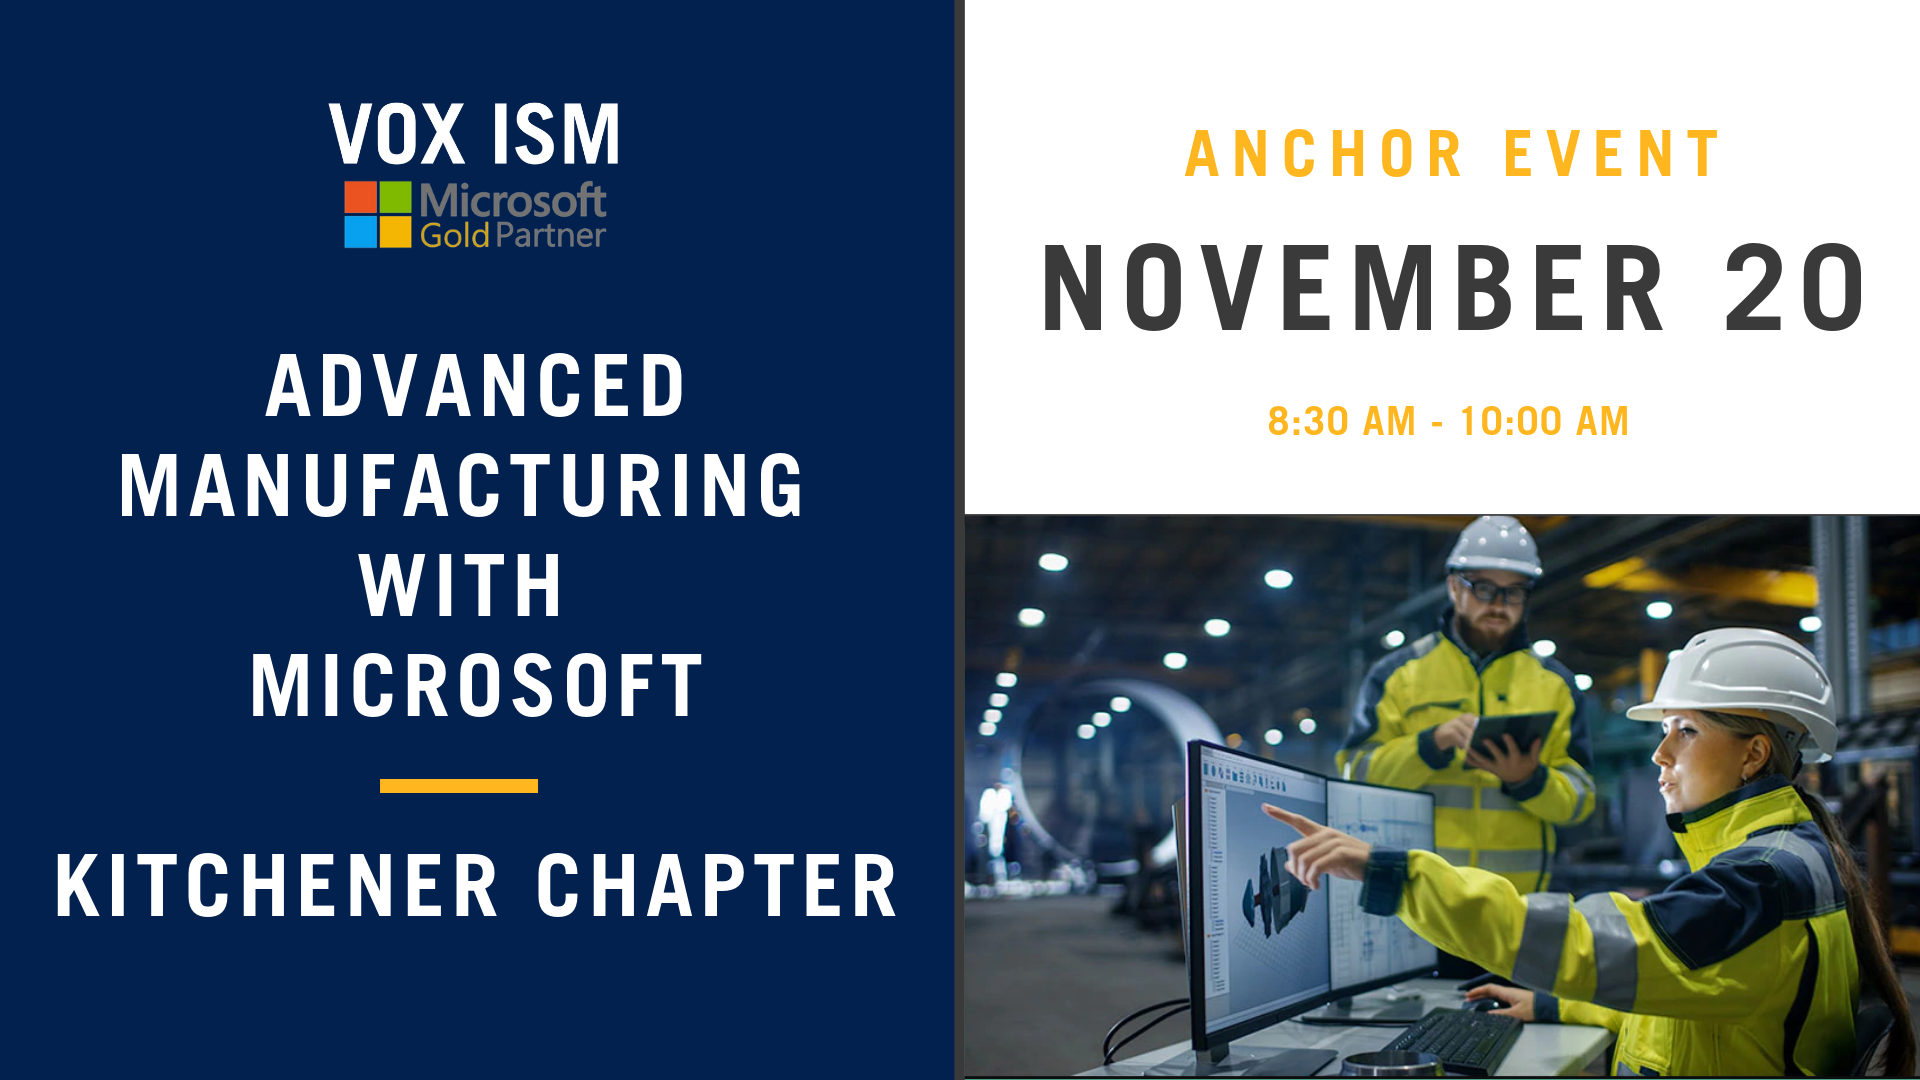 Advanced Manufacturing with Microsoft - Kitchener Chapter - November 20